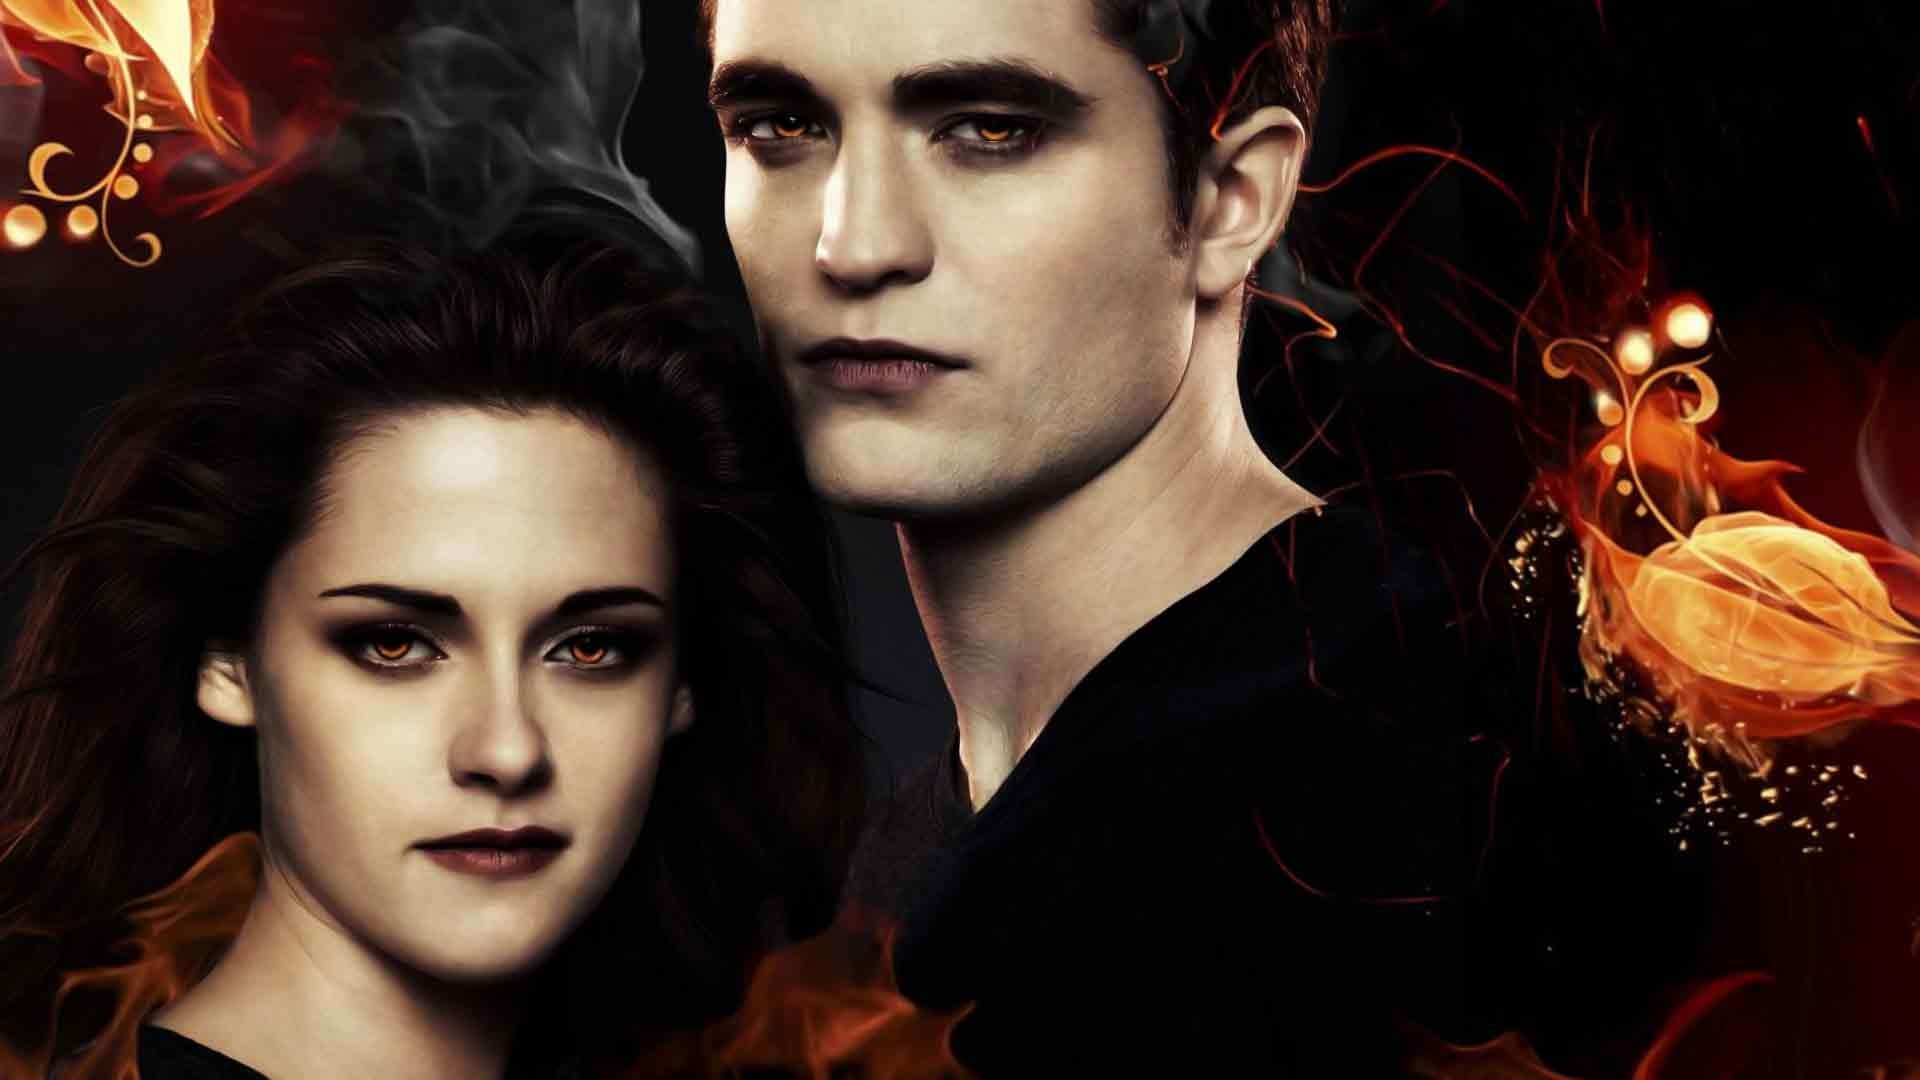 1920x1080  The Twilight Saga Breaking Dawn wallpapers Wallpapers) – Art  Wallpapers